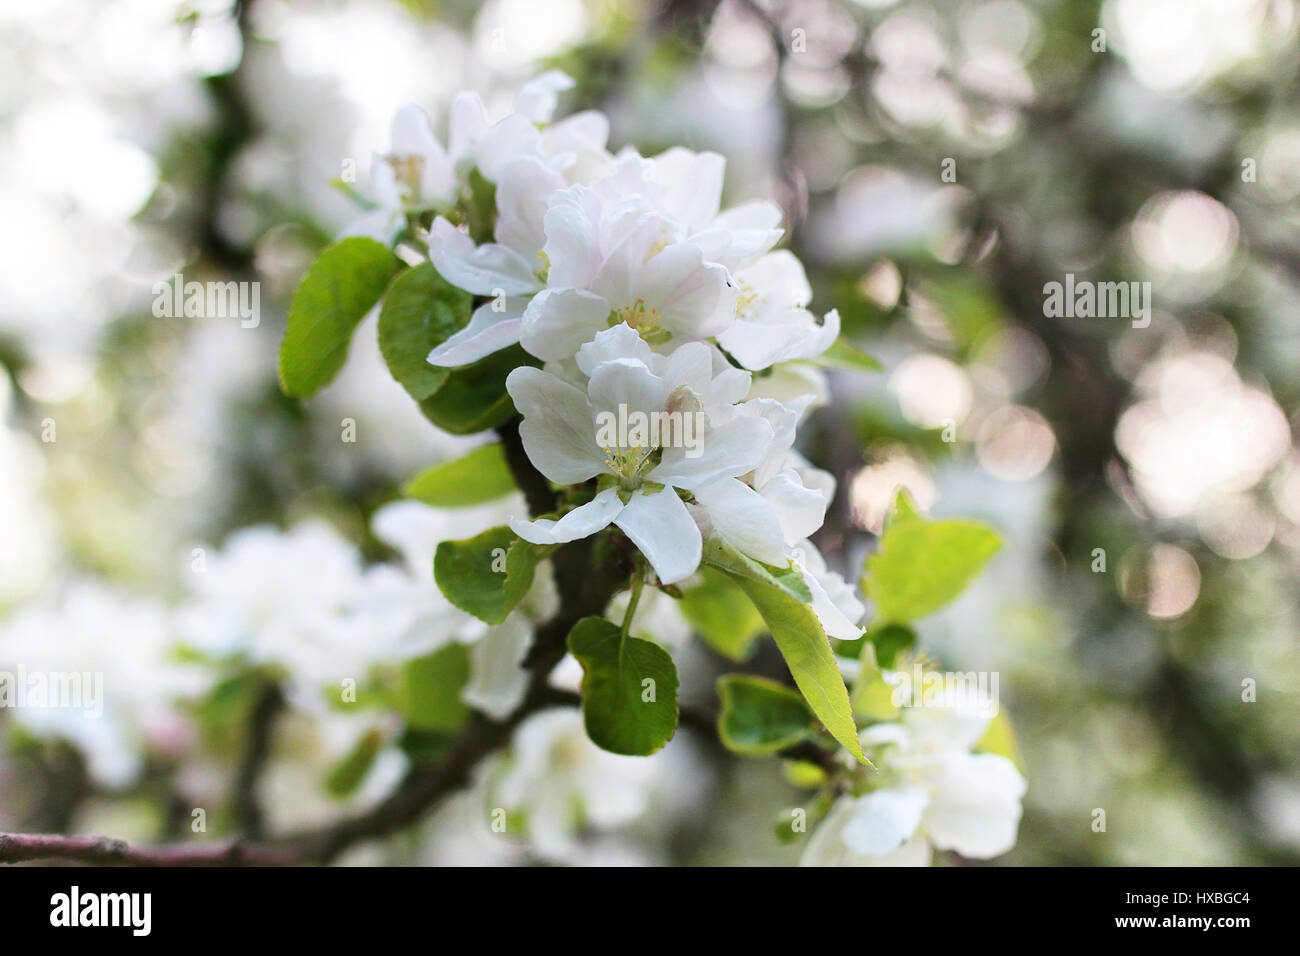 Early Spring Flowering Apple Tree With Bright White Flowers Stock